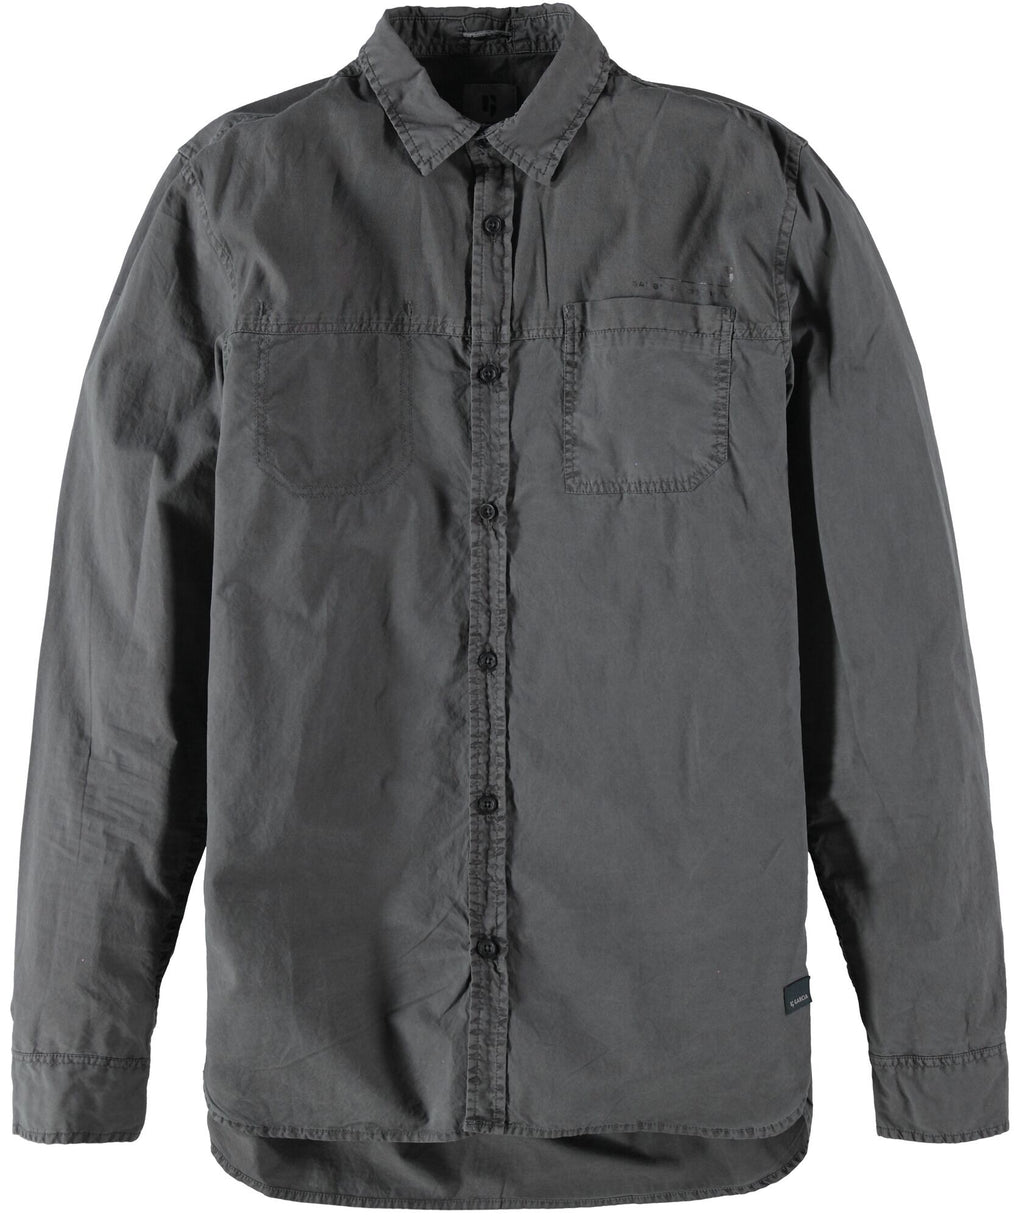 Garcia Men's Slate Labour Shirt